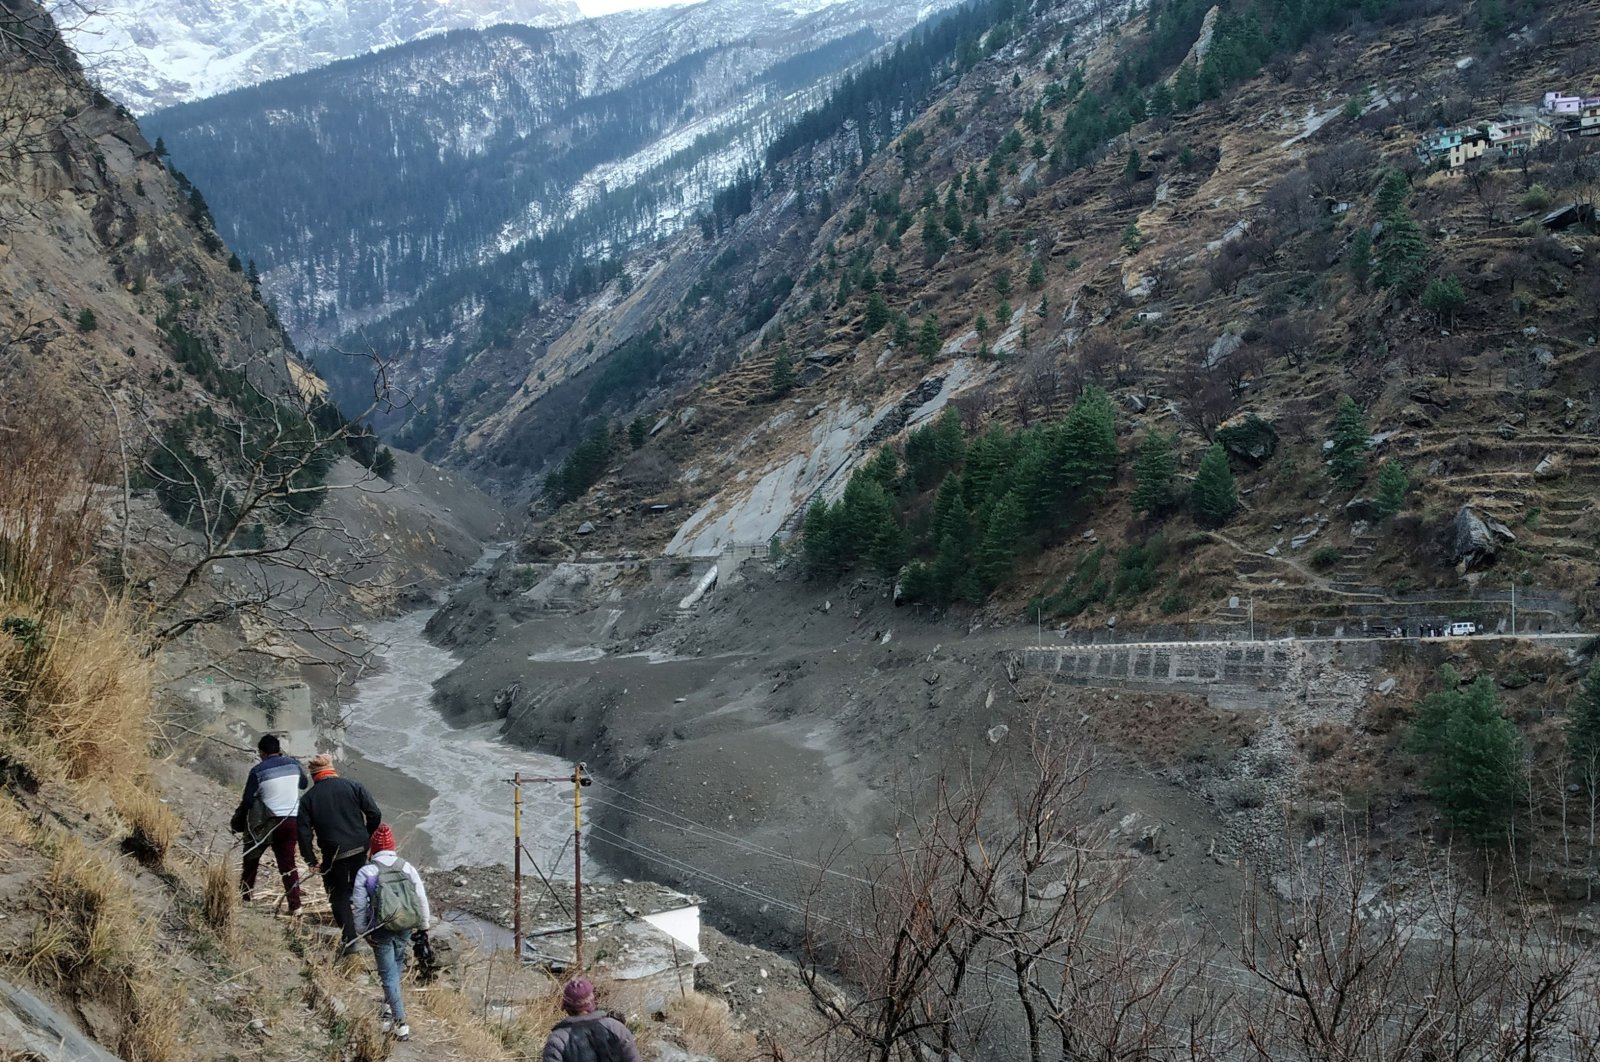 People walk past a destroyed dam after a Himalayan glacier broke and crashed at Raini Chak Lata village in the Chamoli district, in the northern state of Uttarakhand, India, Feb. 7, 2021. (Reuters Photo)